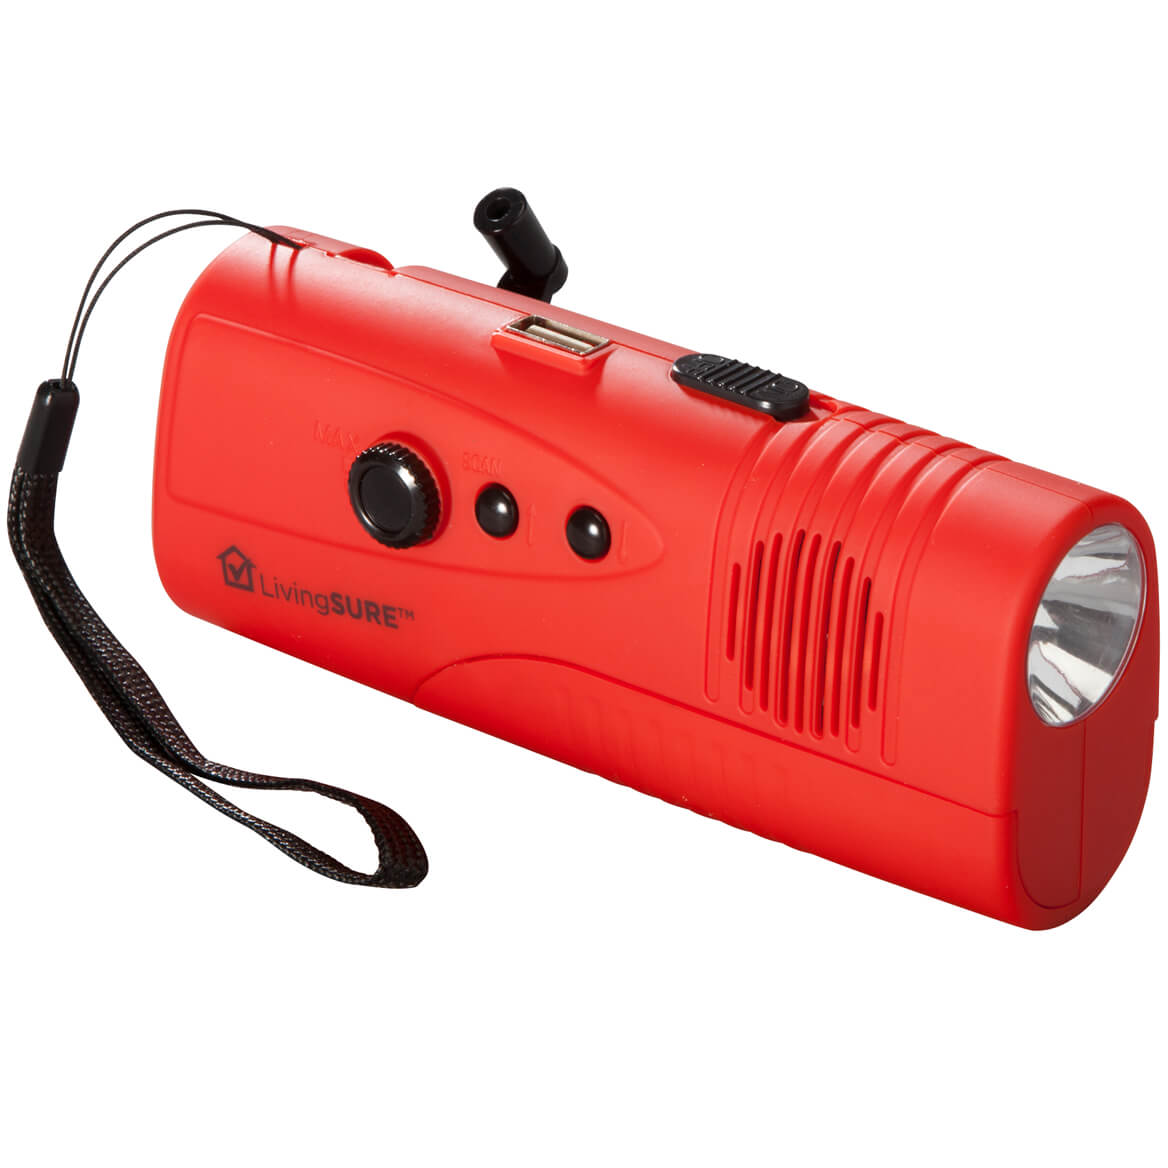 LivingSURE™ Emergency Flashlight Radio Deluxe-351493